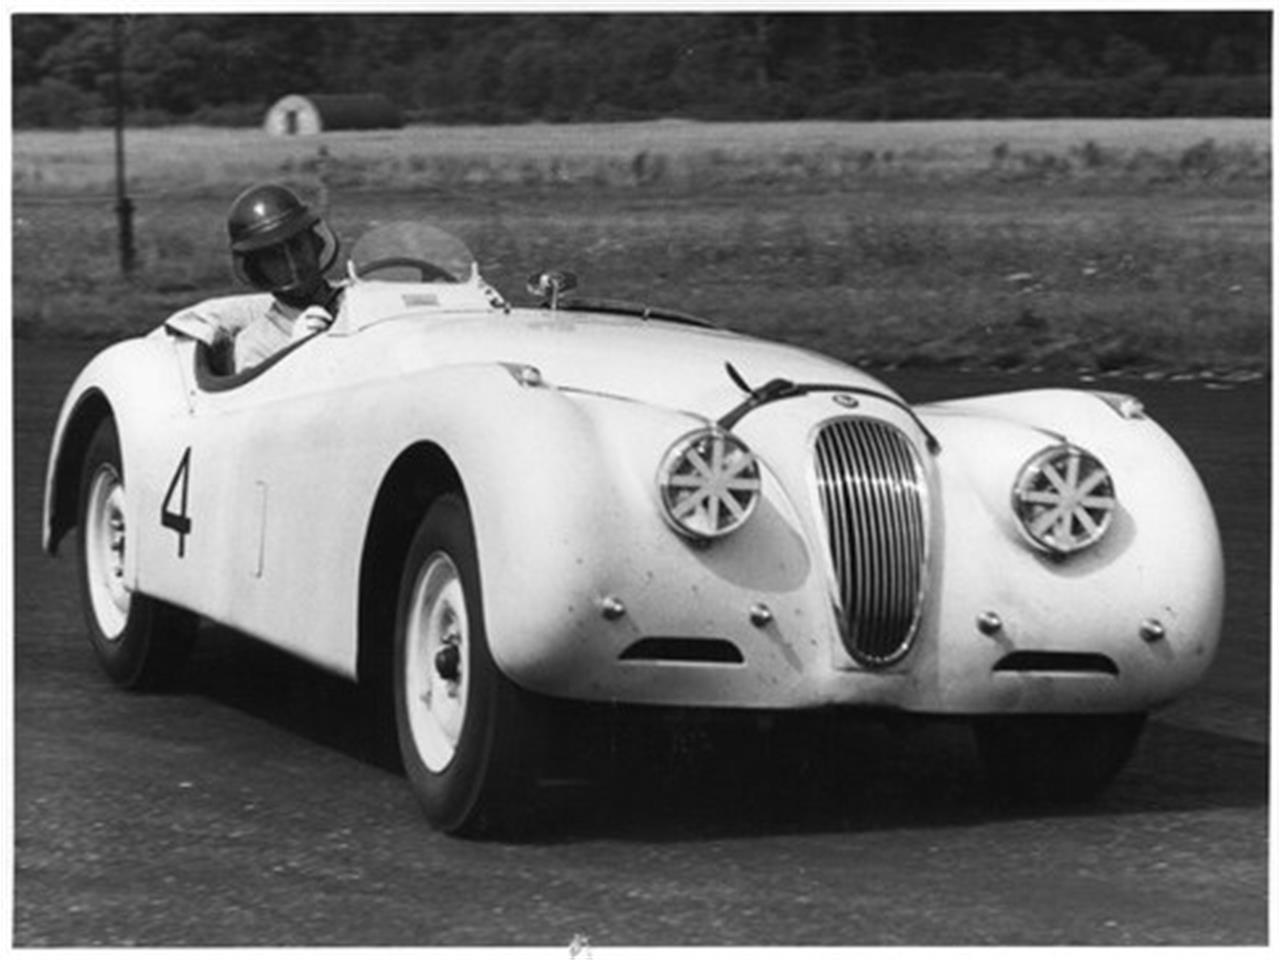 Large Picture of '52 Jaguar XK120 located in Maldon, Essex  Offered by JD Classics LTD - LRLH